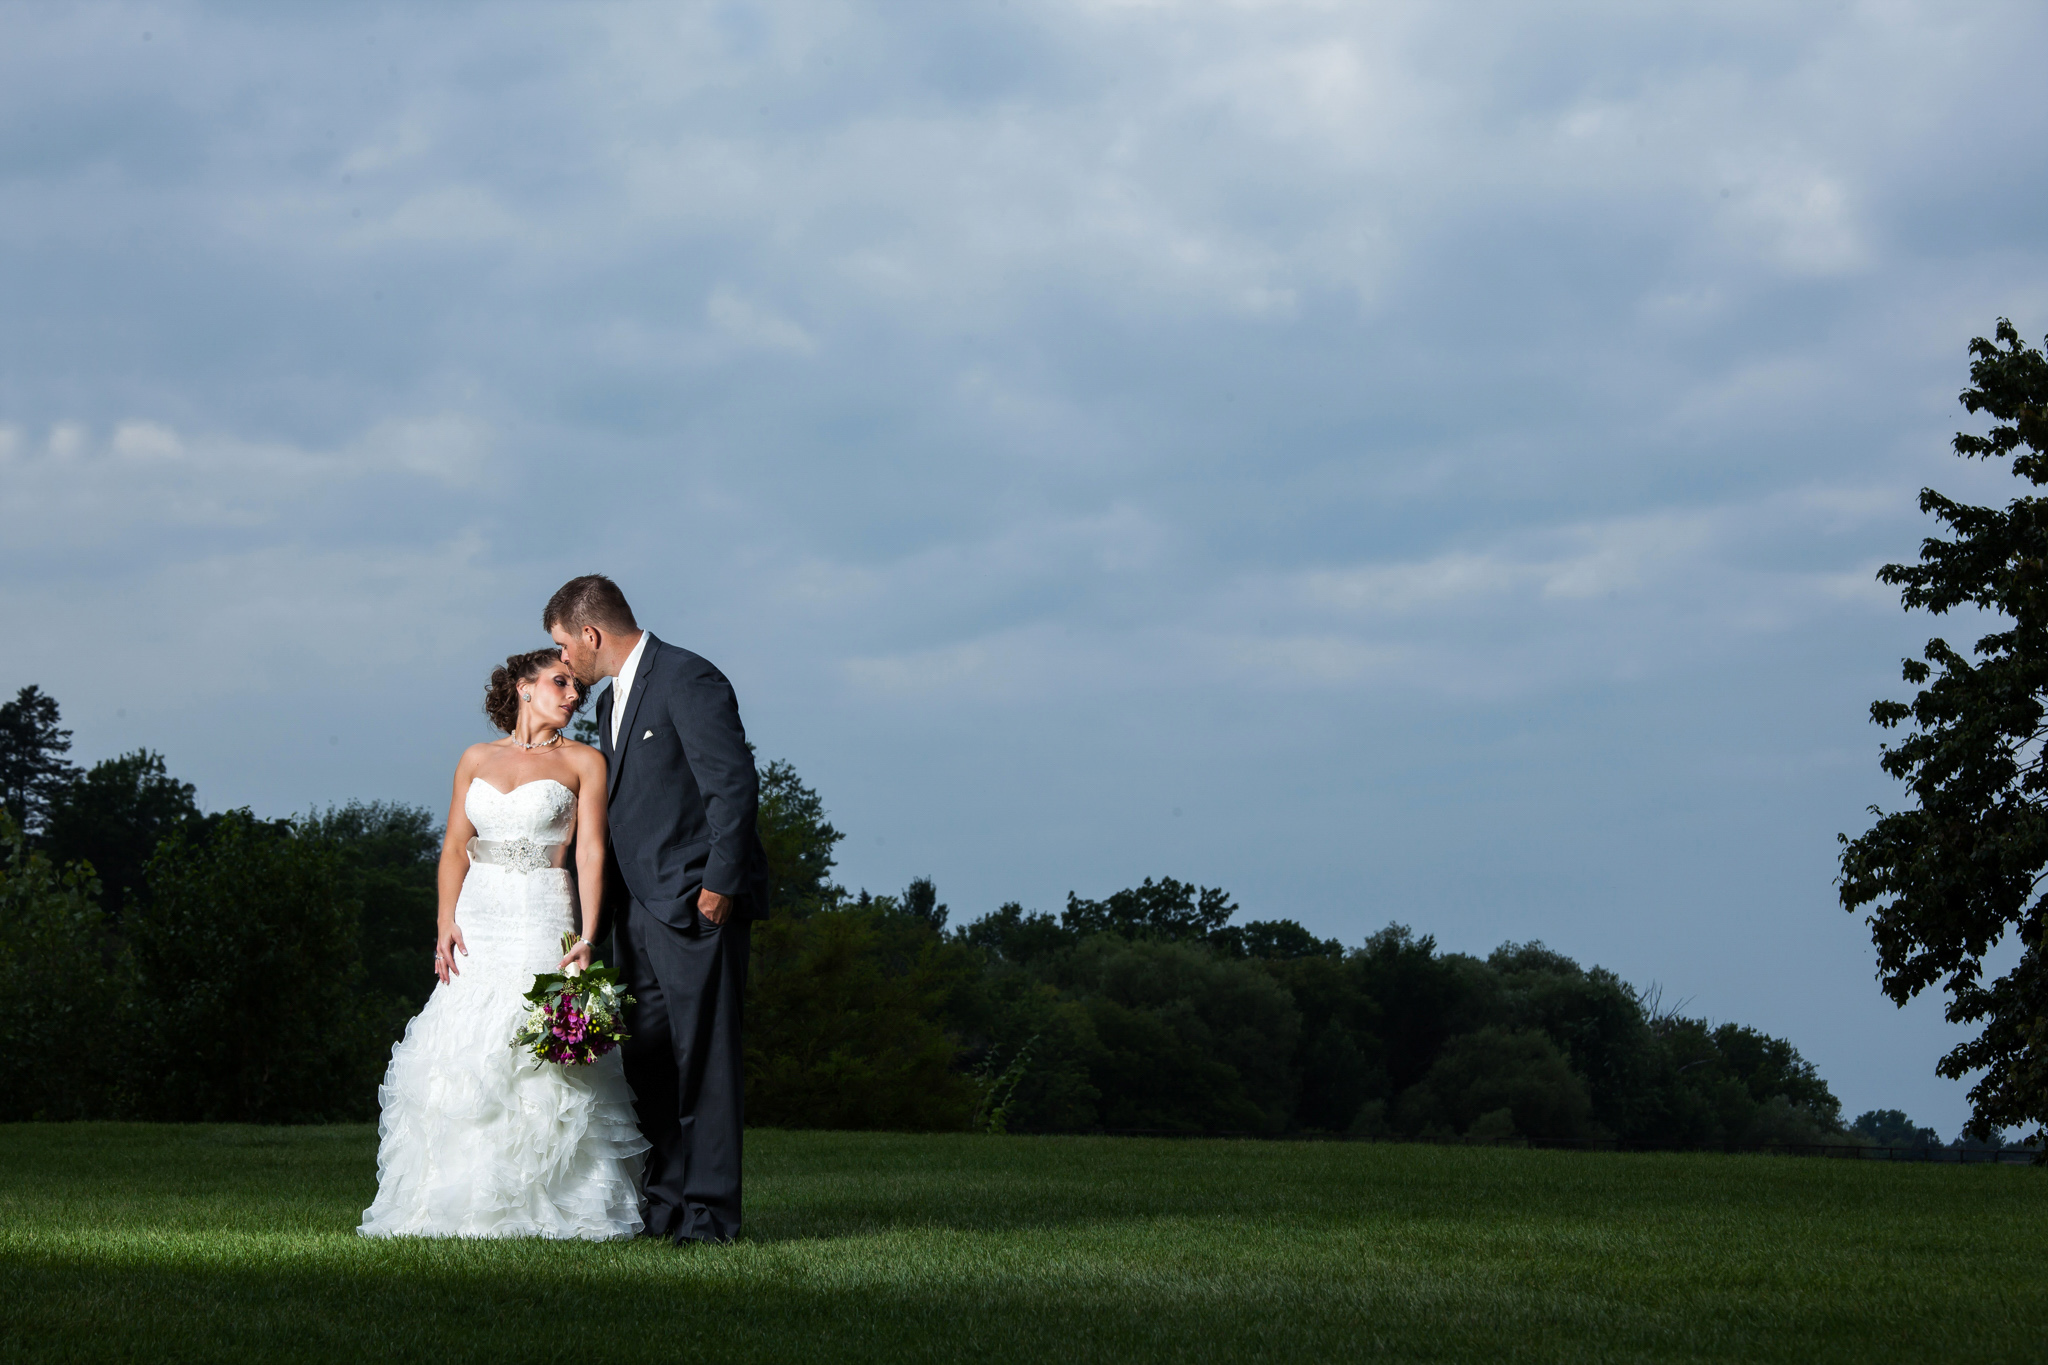 Menominee wedding photographer